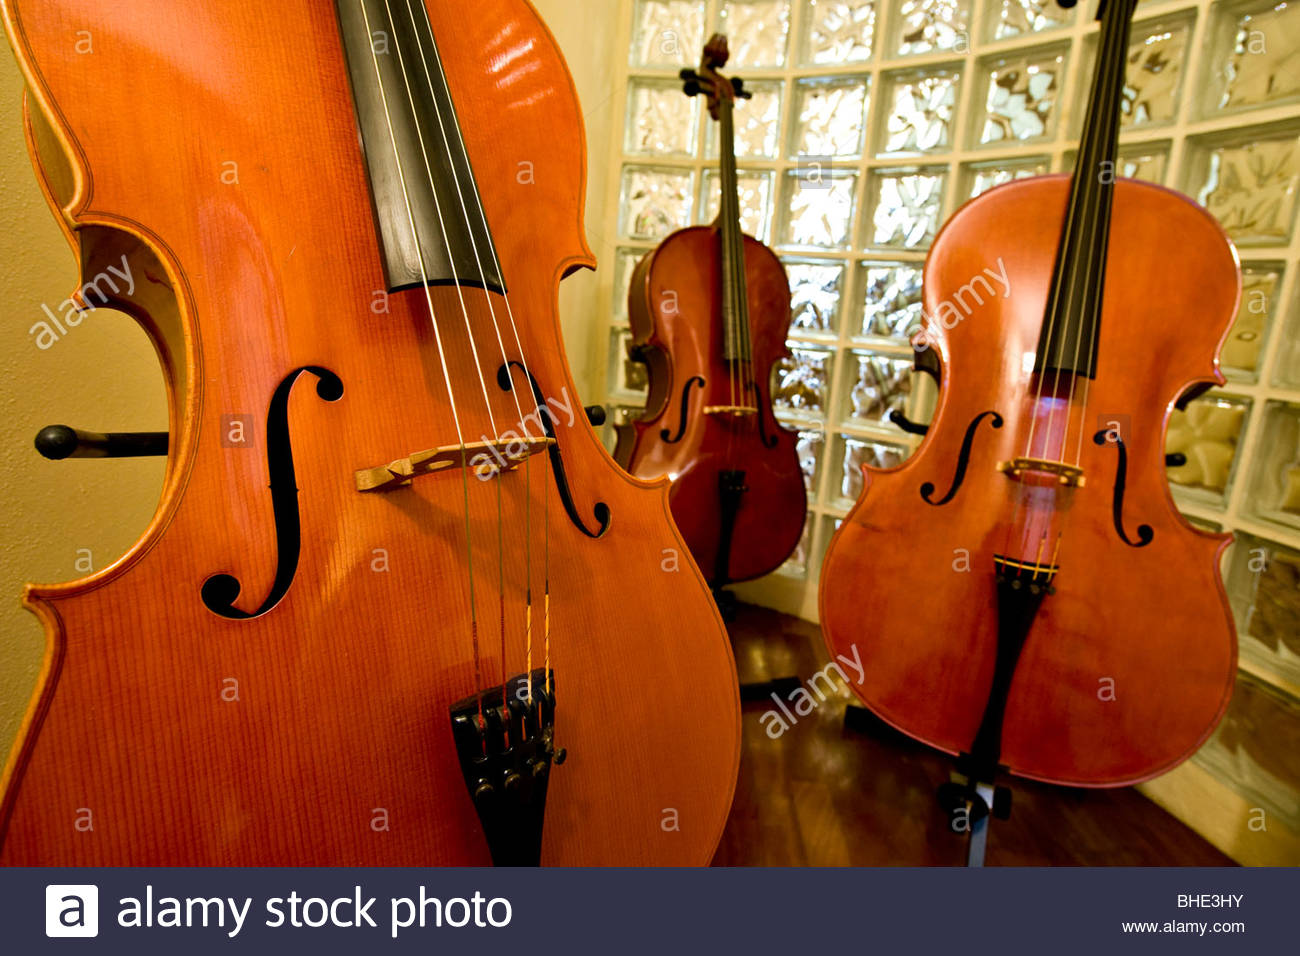 carlson and neumann, viola, cremona, lombardia, italy - Stock Image